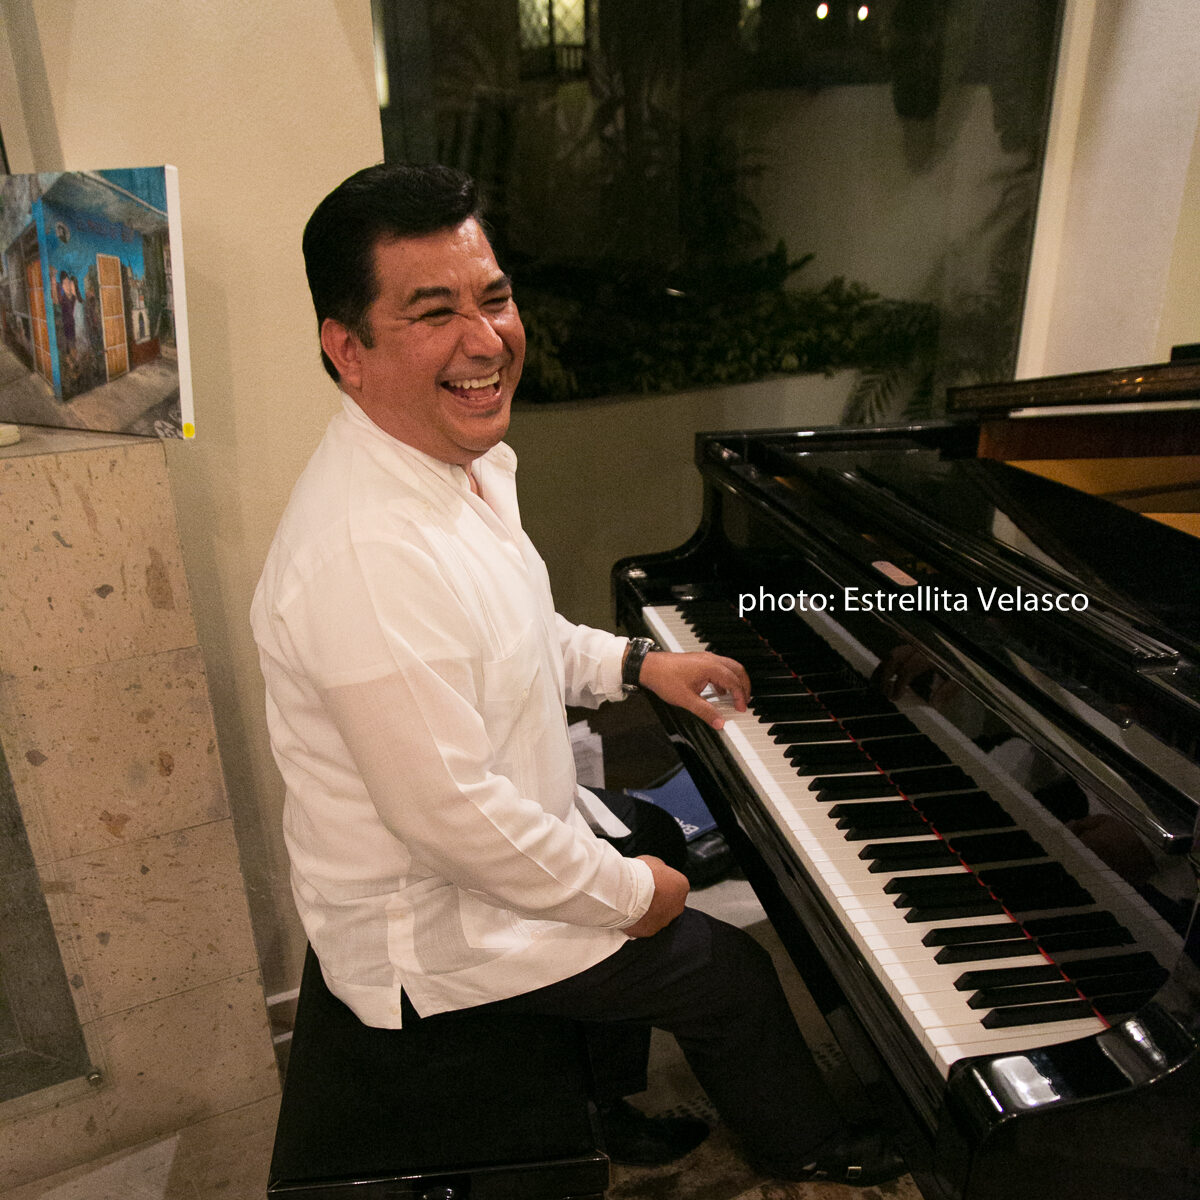 Pianist Salvatore in Puerto Vallarta